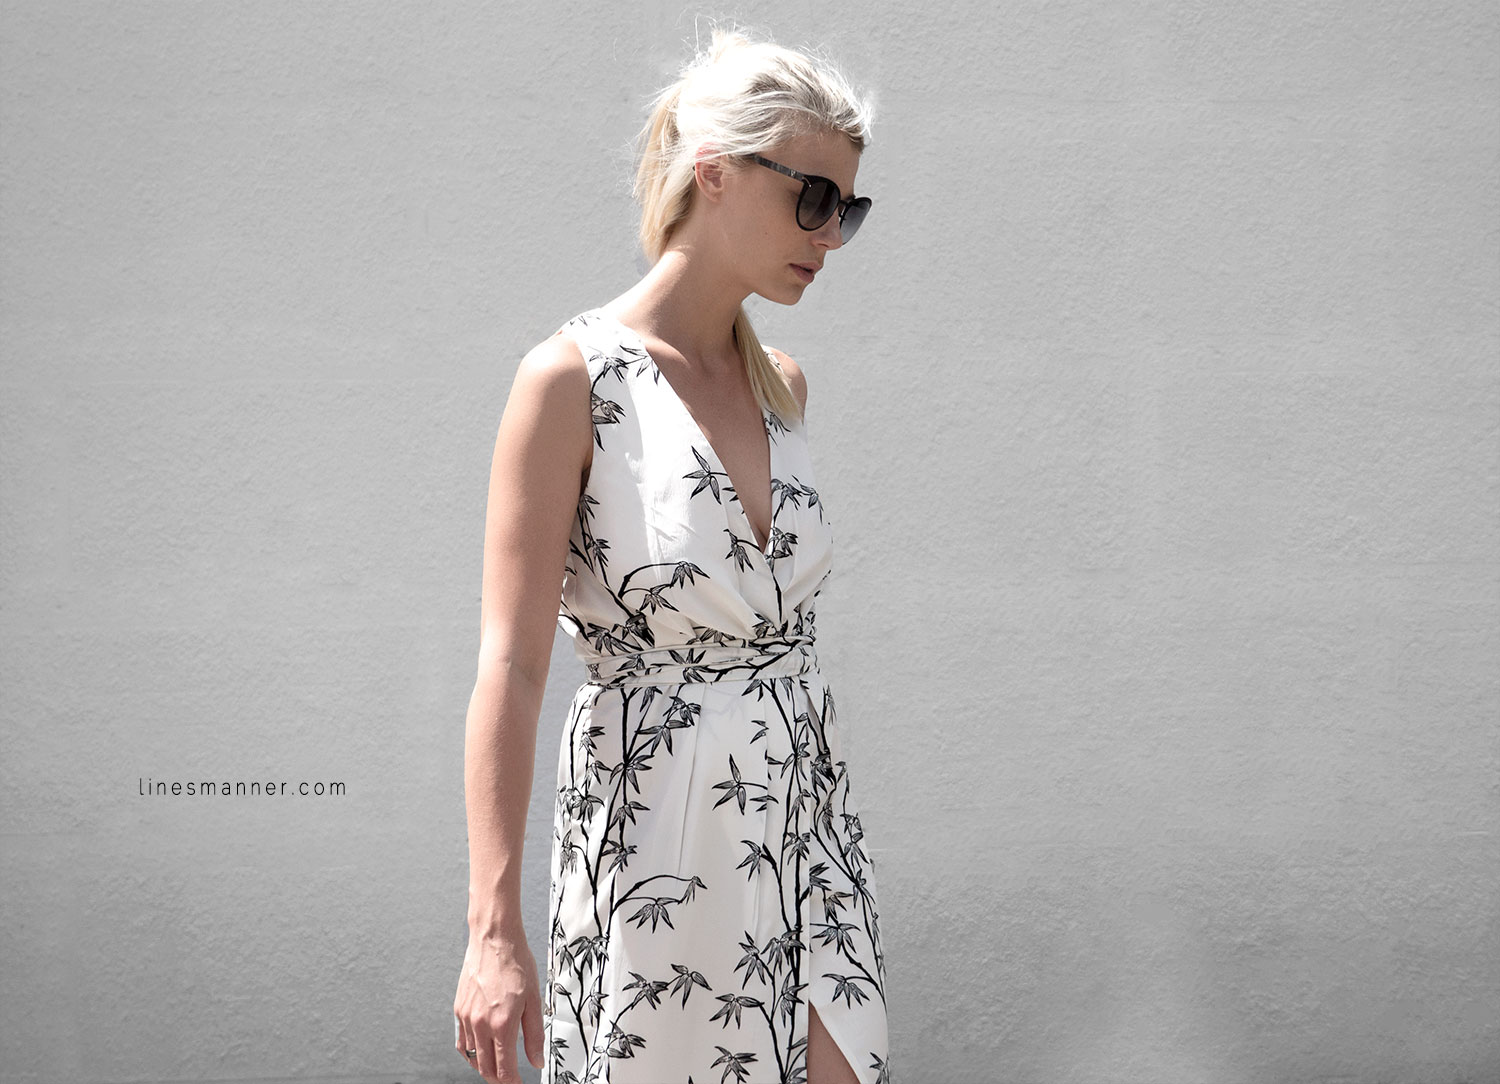 Lines-Manner-Minimal-Simplicity-Essentials-Bon_Label-Neon_Rose_Print-Bamboo-Slit_Dress-Wrap_Dress-Maxi_Dress-Fesh-Black_and_White-Casual-Elegant-Bright-Monochrome-13